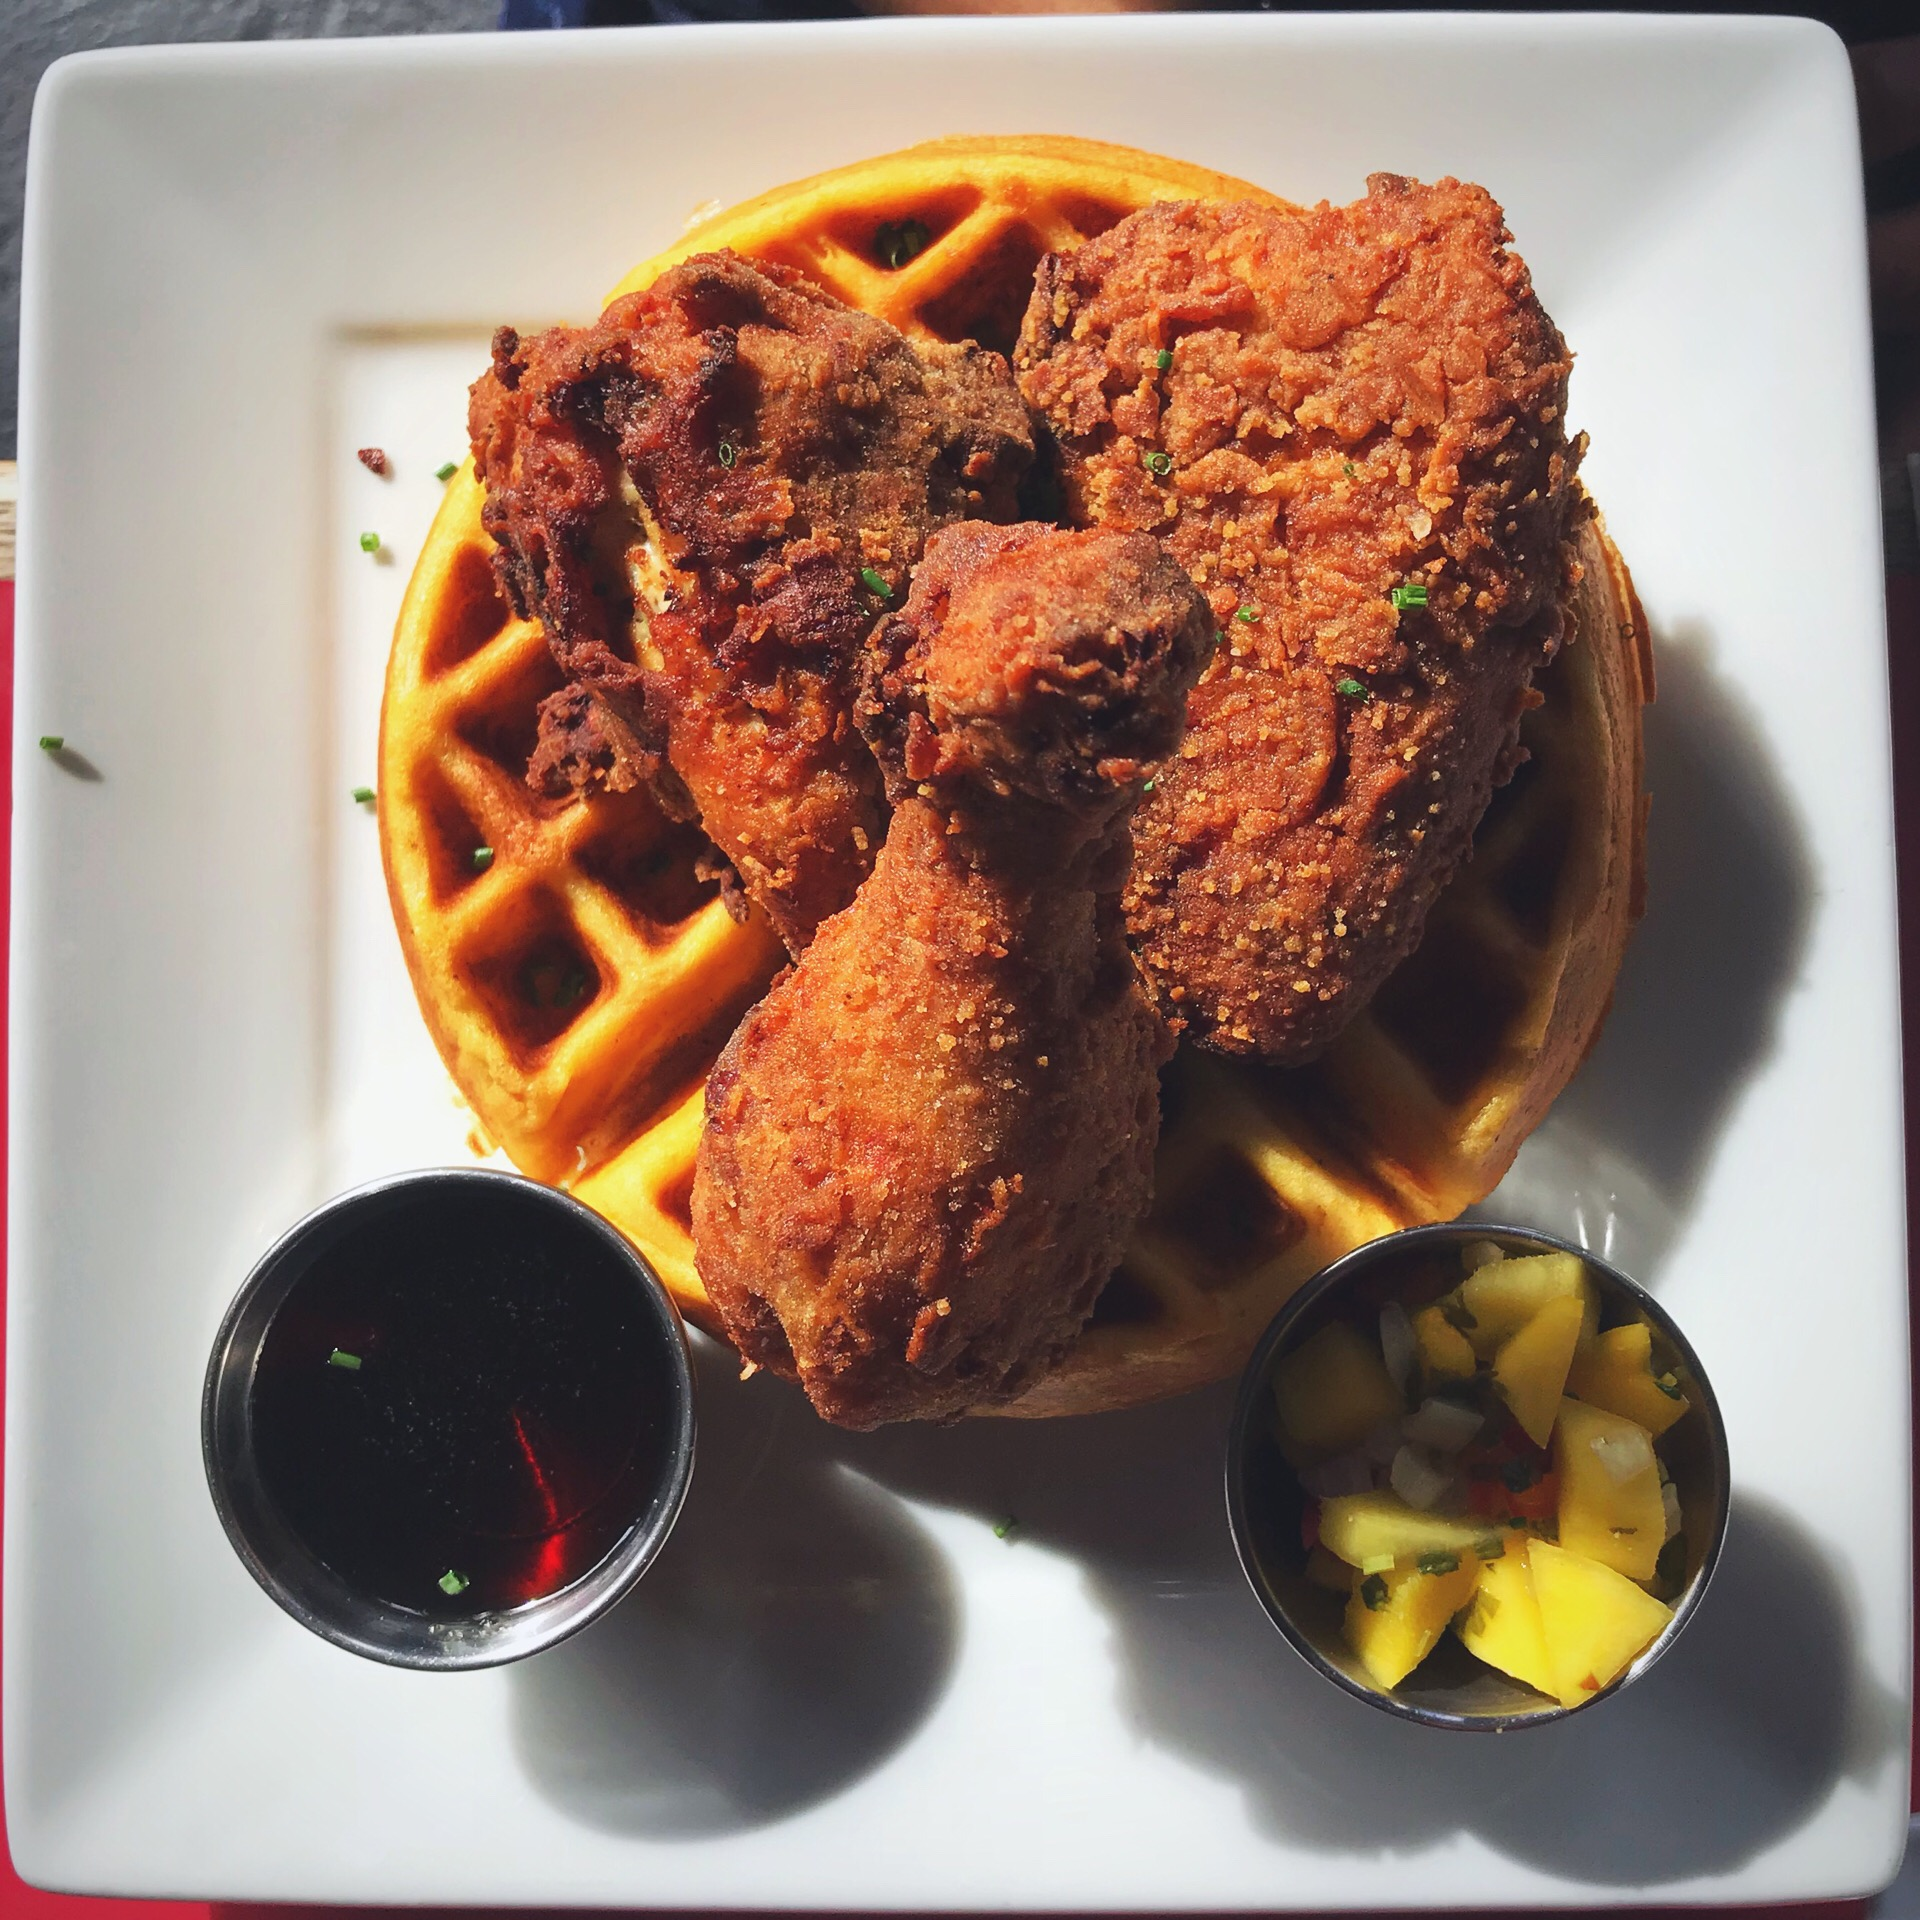 Fried Chicken & Sweet Potato Waffle with Mango Salsa & Syrup. - Photo Credit: Mechelle Miller